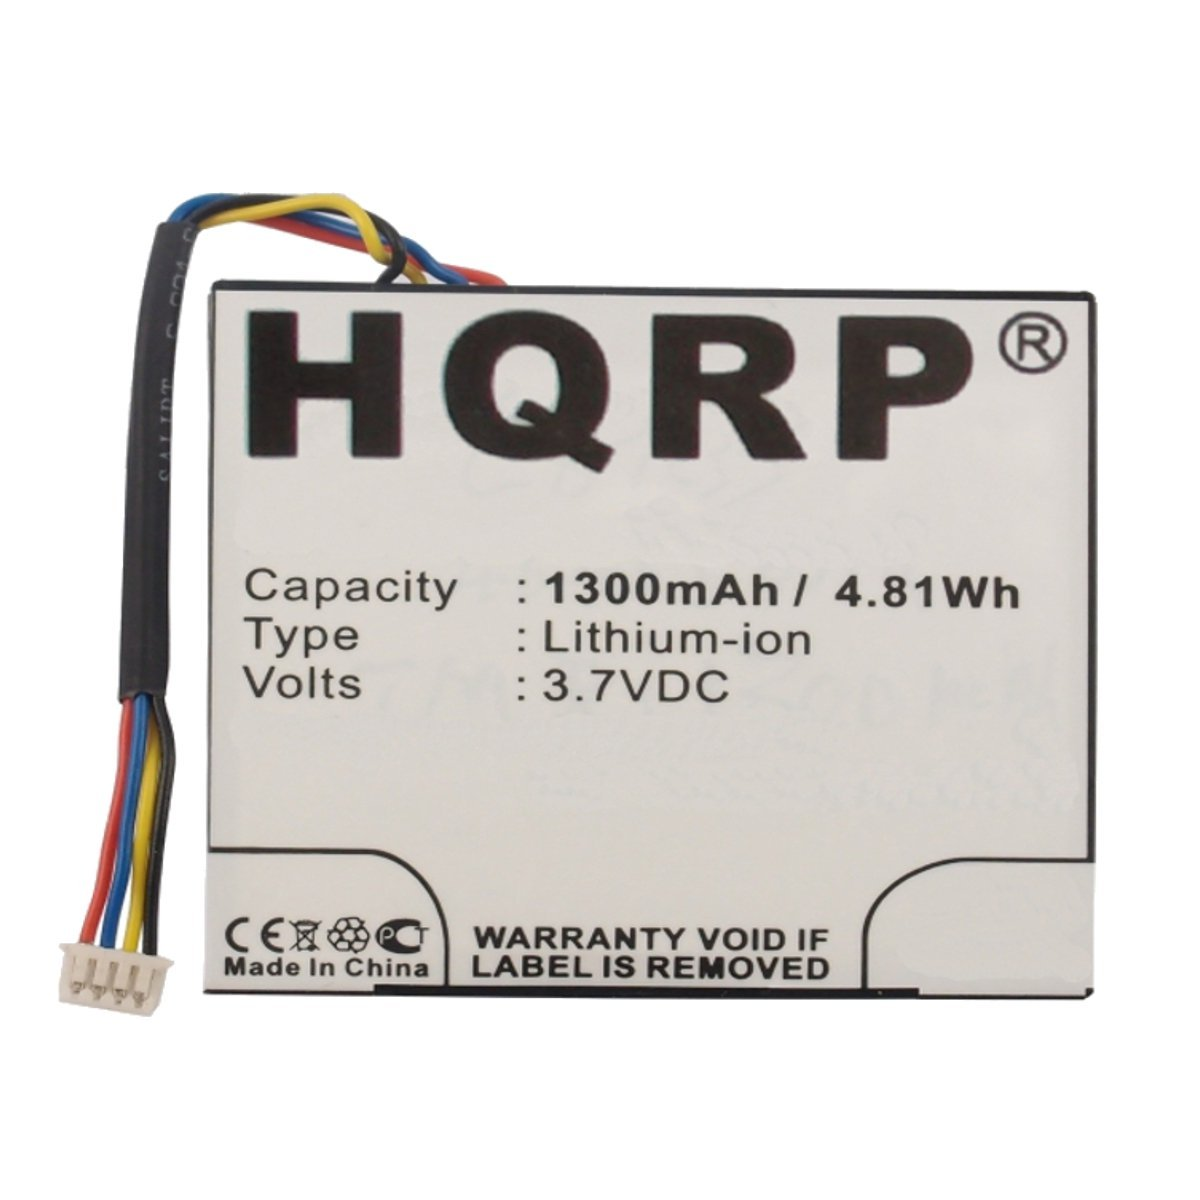 HQRP Battery for Texas Instruments TI-84 Plus C Silver Edition Calculator PN-P11P35-09-N01 N2/AC/2L1/A 00747 F-0310 3.7L0800SP 541384530001-G1012 P11P35-09-N01 + HQRP Coaster